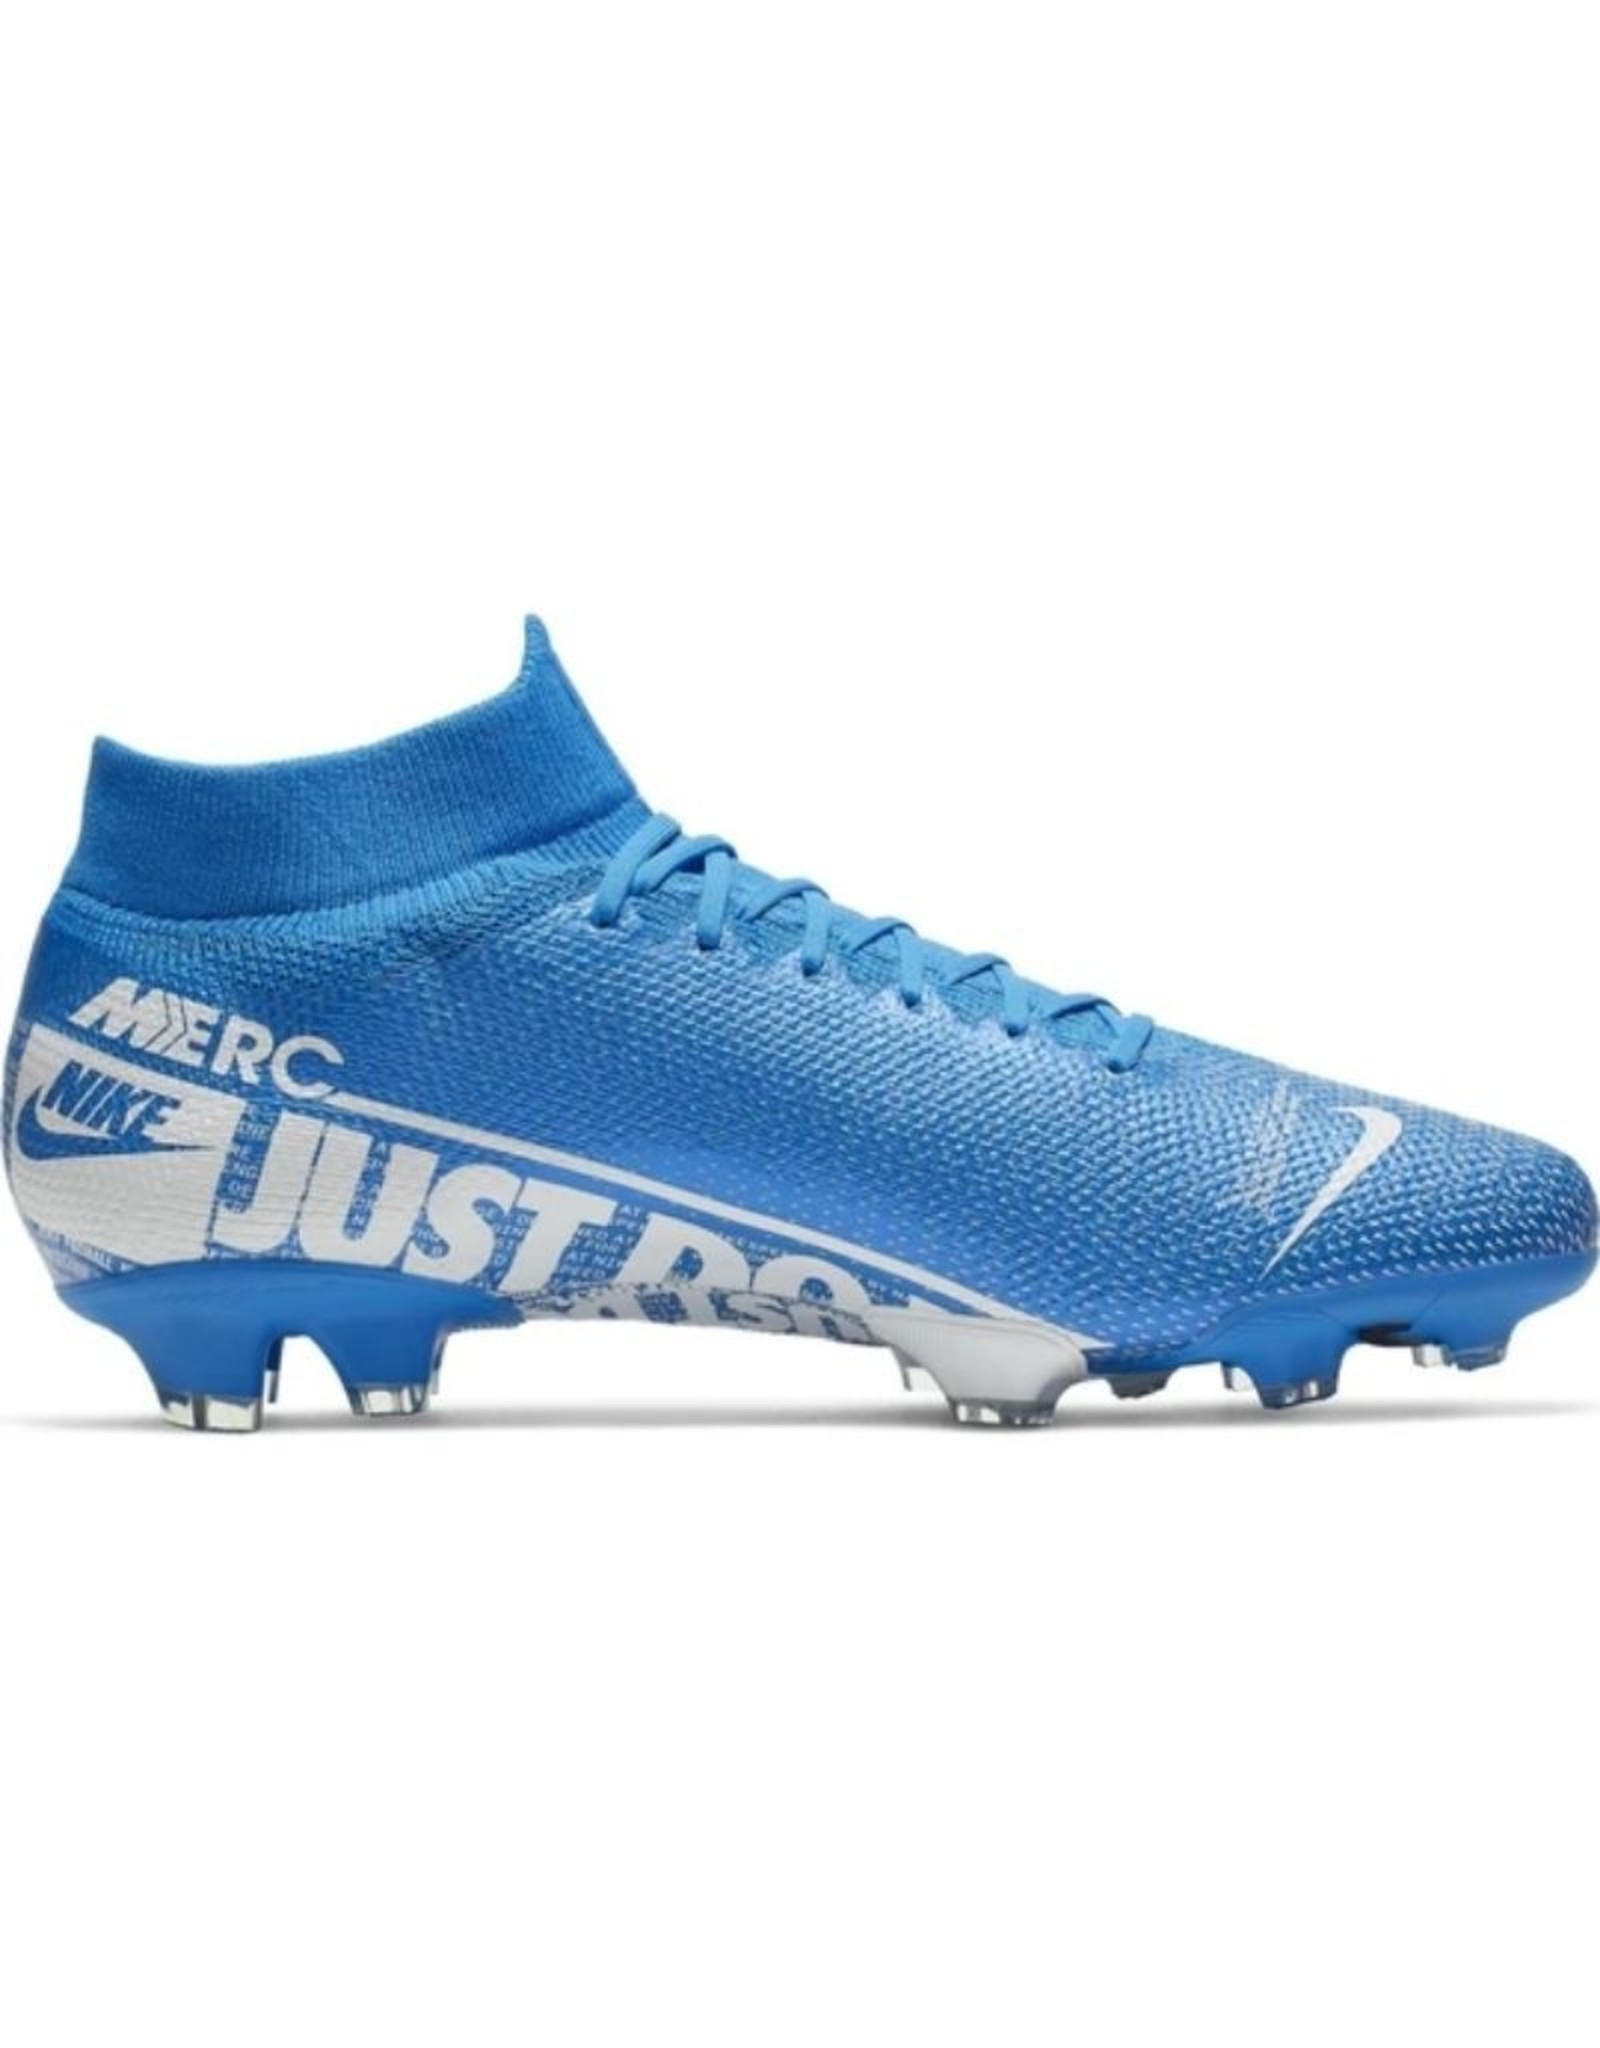 Nike Mercurial Superfly 7 Pro FG Soccer Cleat Blue Hero